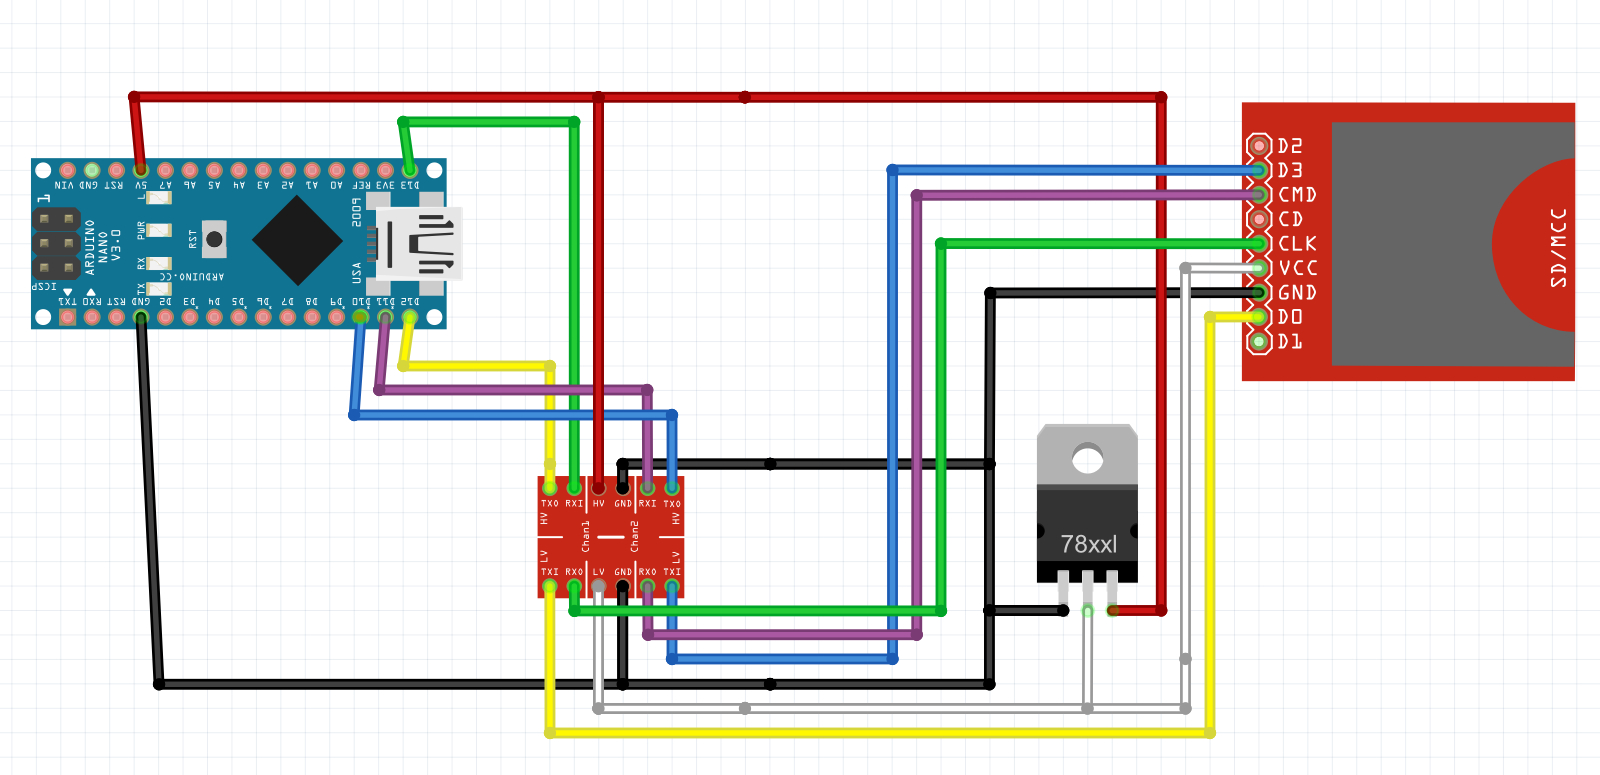 Basic Sd Card Reader Circuit - Usb Card Reader Wiring Diagram